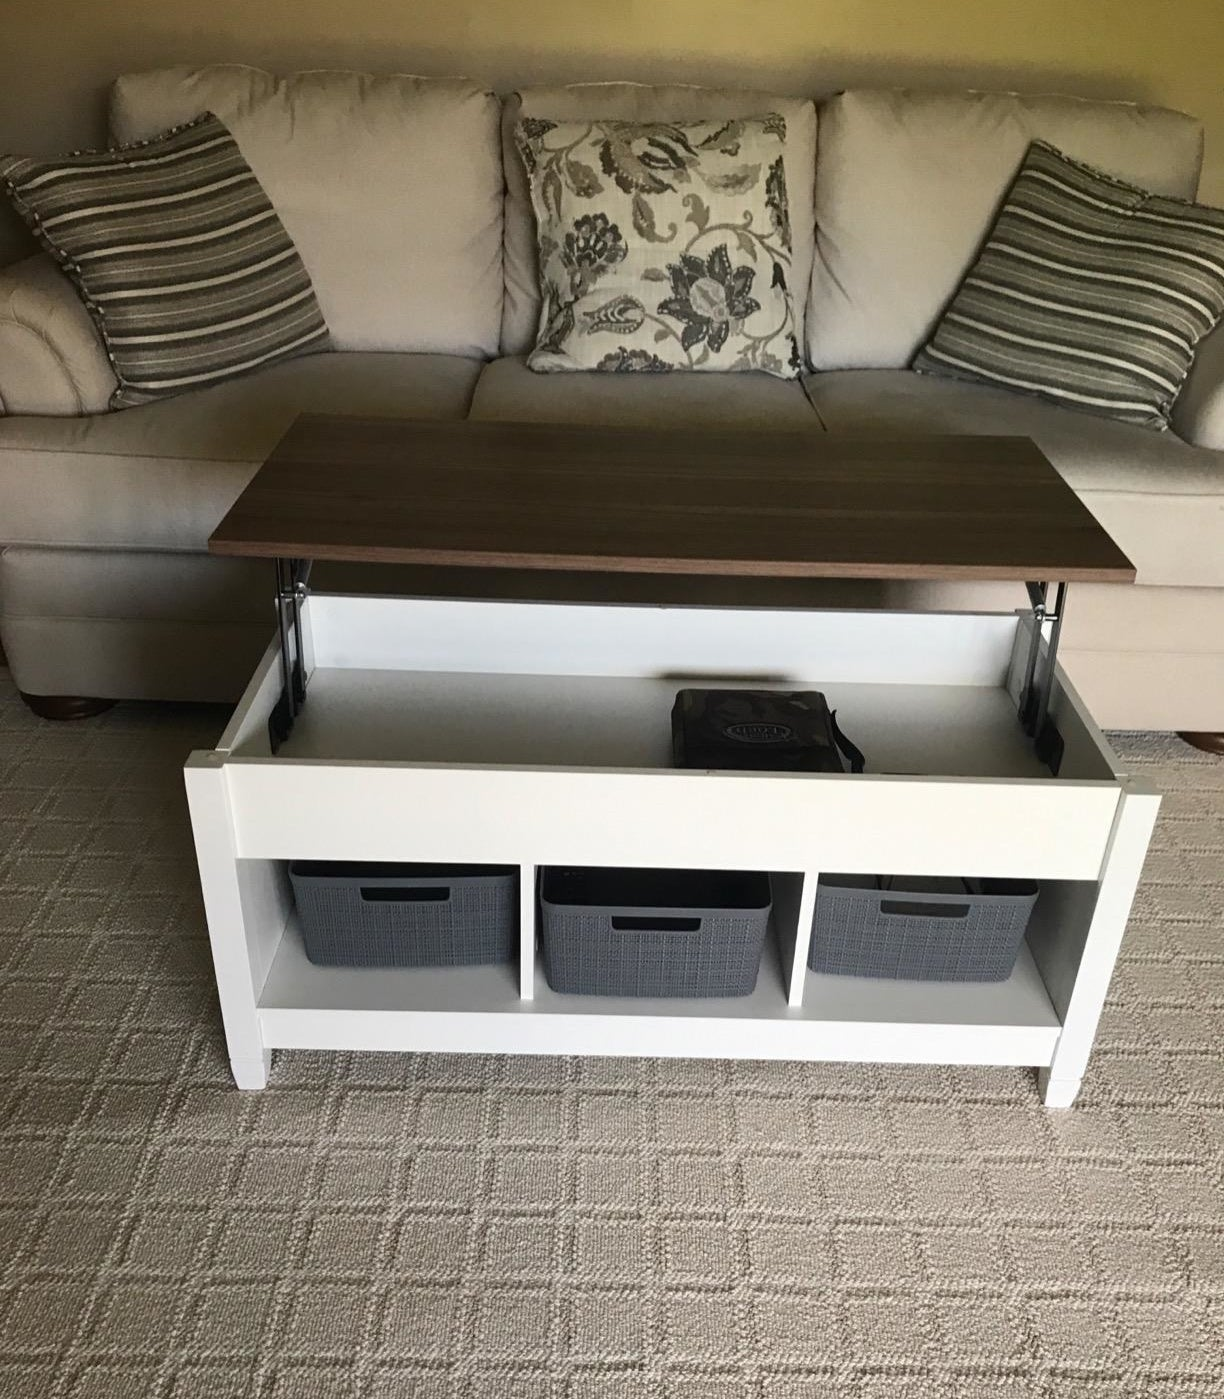 reviewer image of the white TANGKULA lift top Coffee Table in a living room with the top lifted up